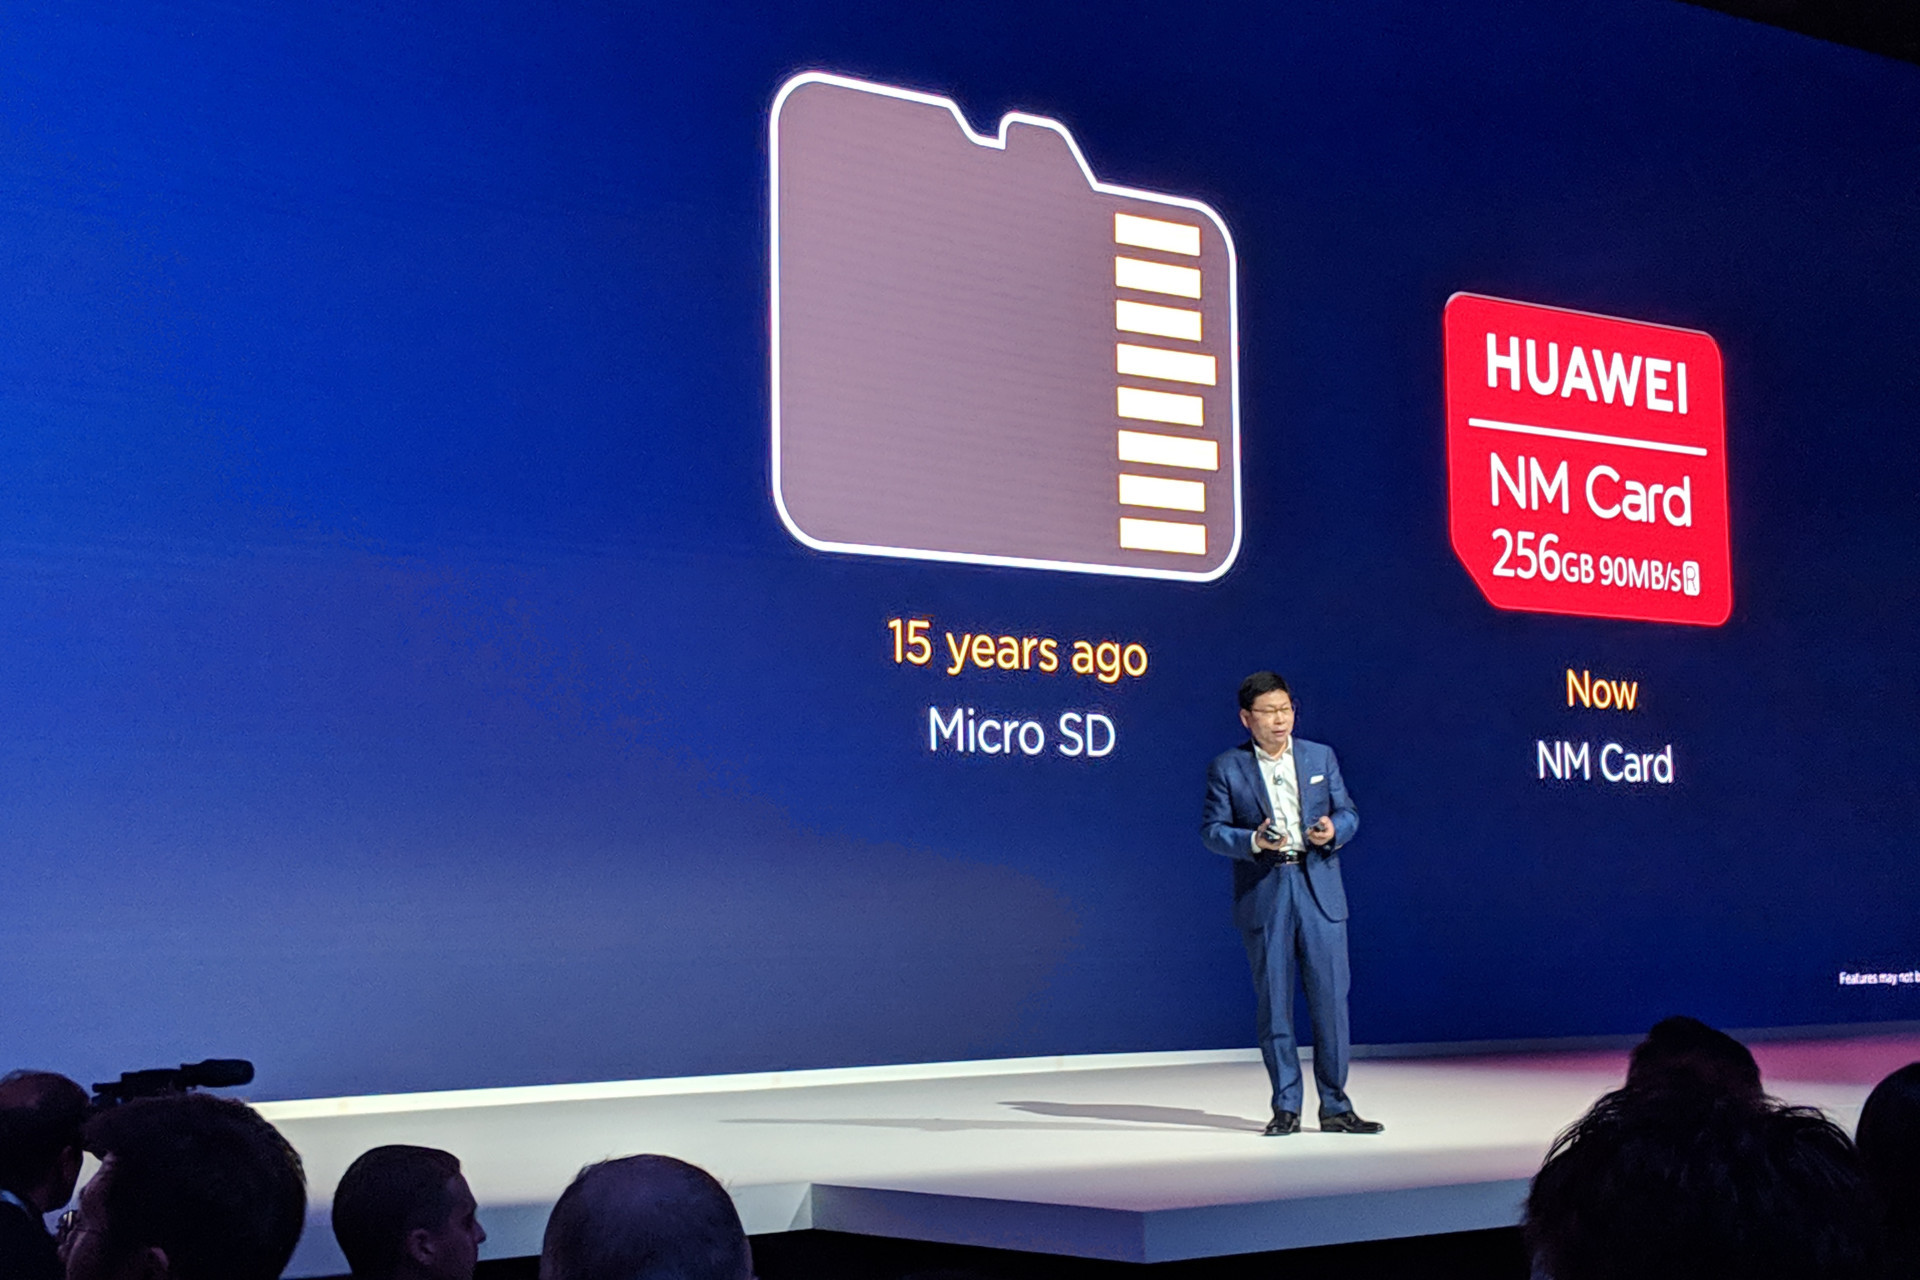 Huawei Nm Card Micro Sd 1